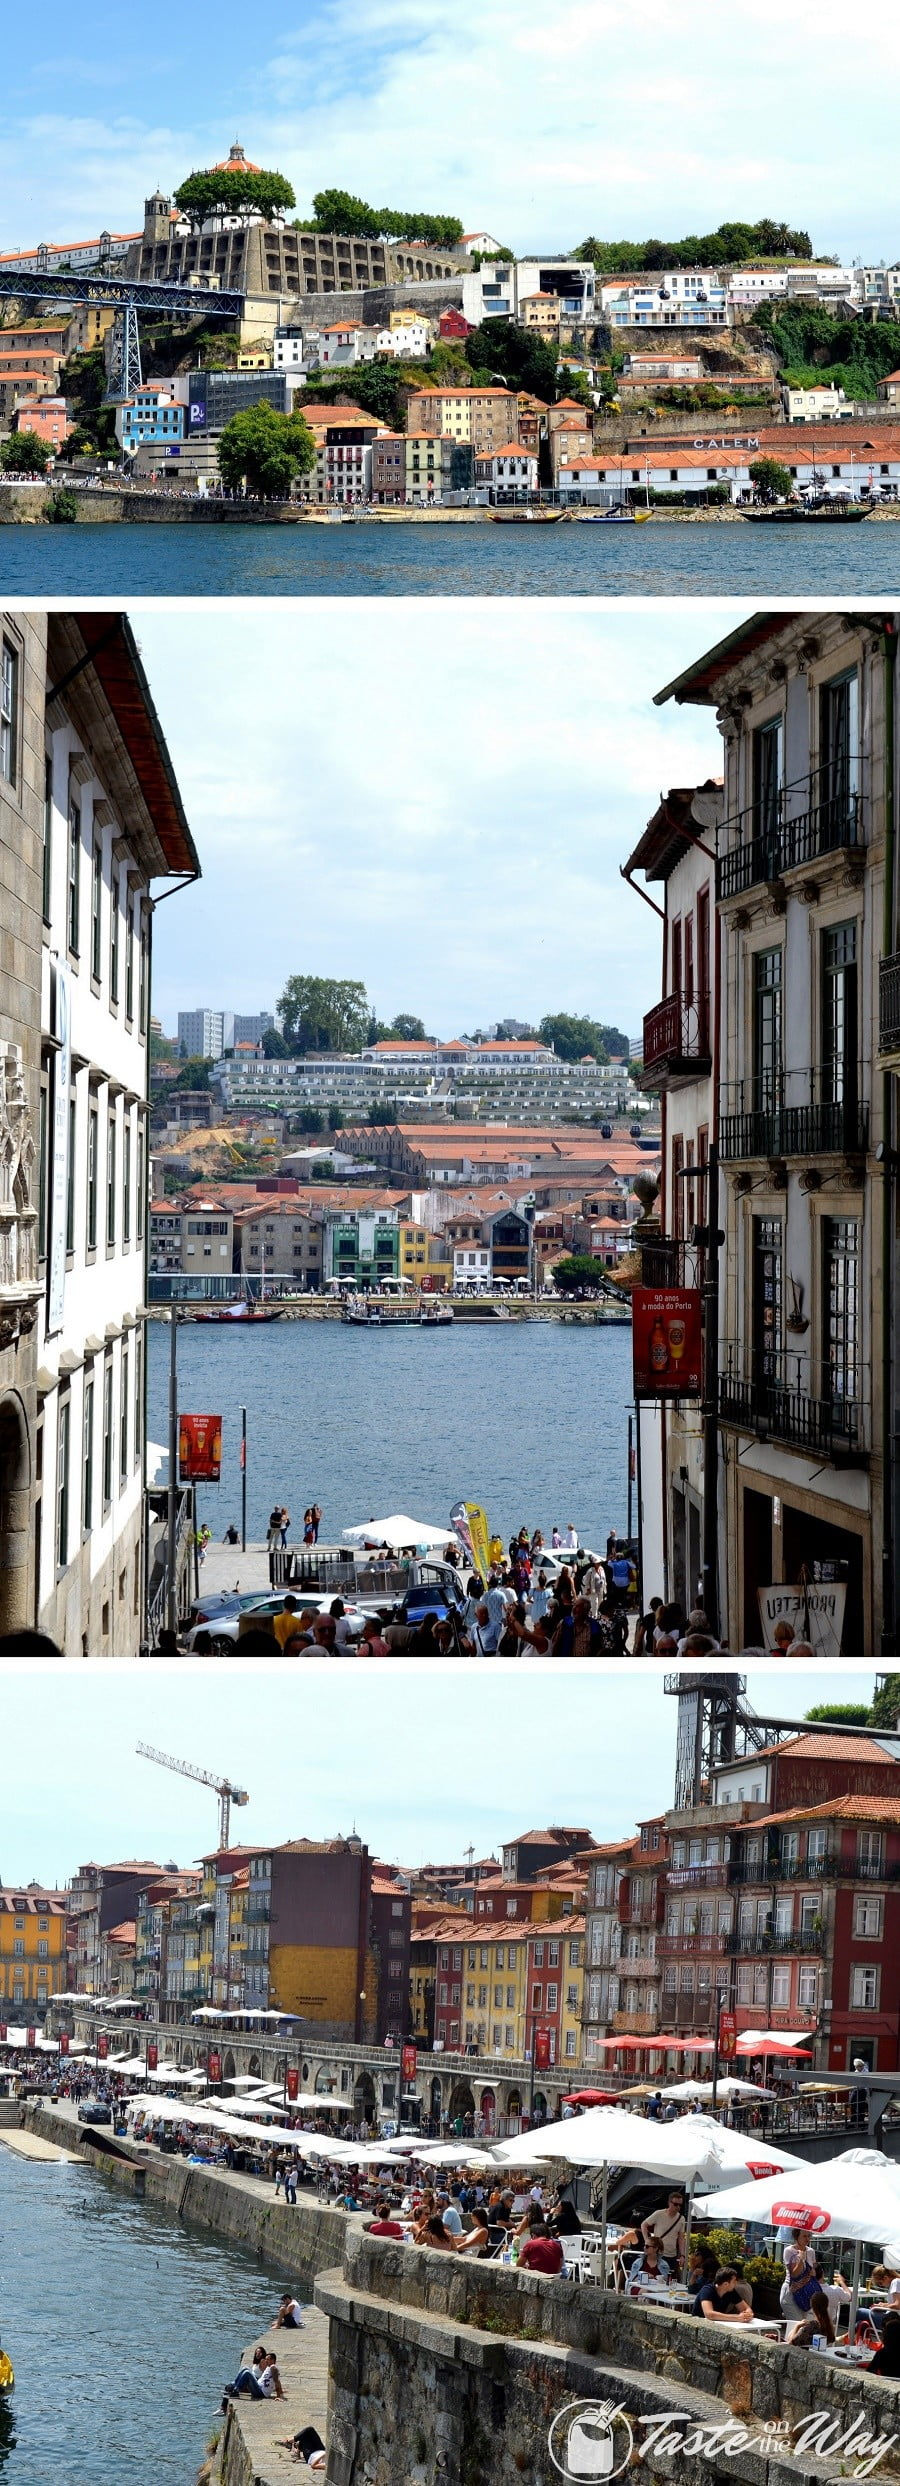 One of the top #thingstodo in #Porto, #Portugal is to have lunch by the river Douro in Vila de Nova Gaia. Check out for more! #travel #photography @tasteontheway